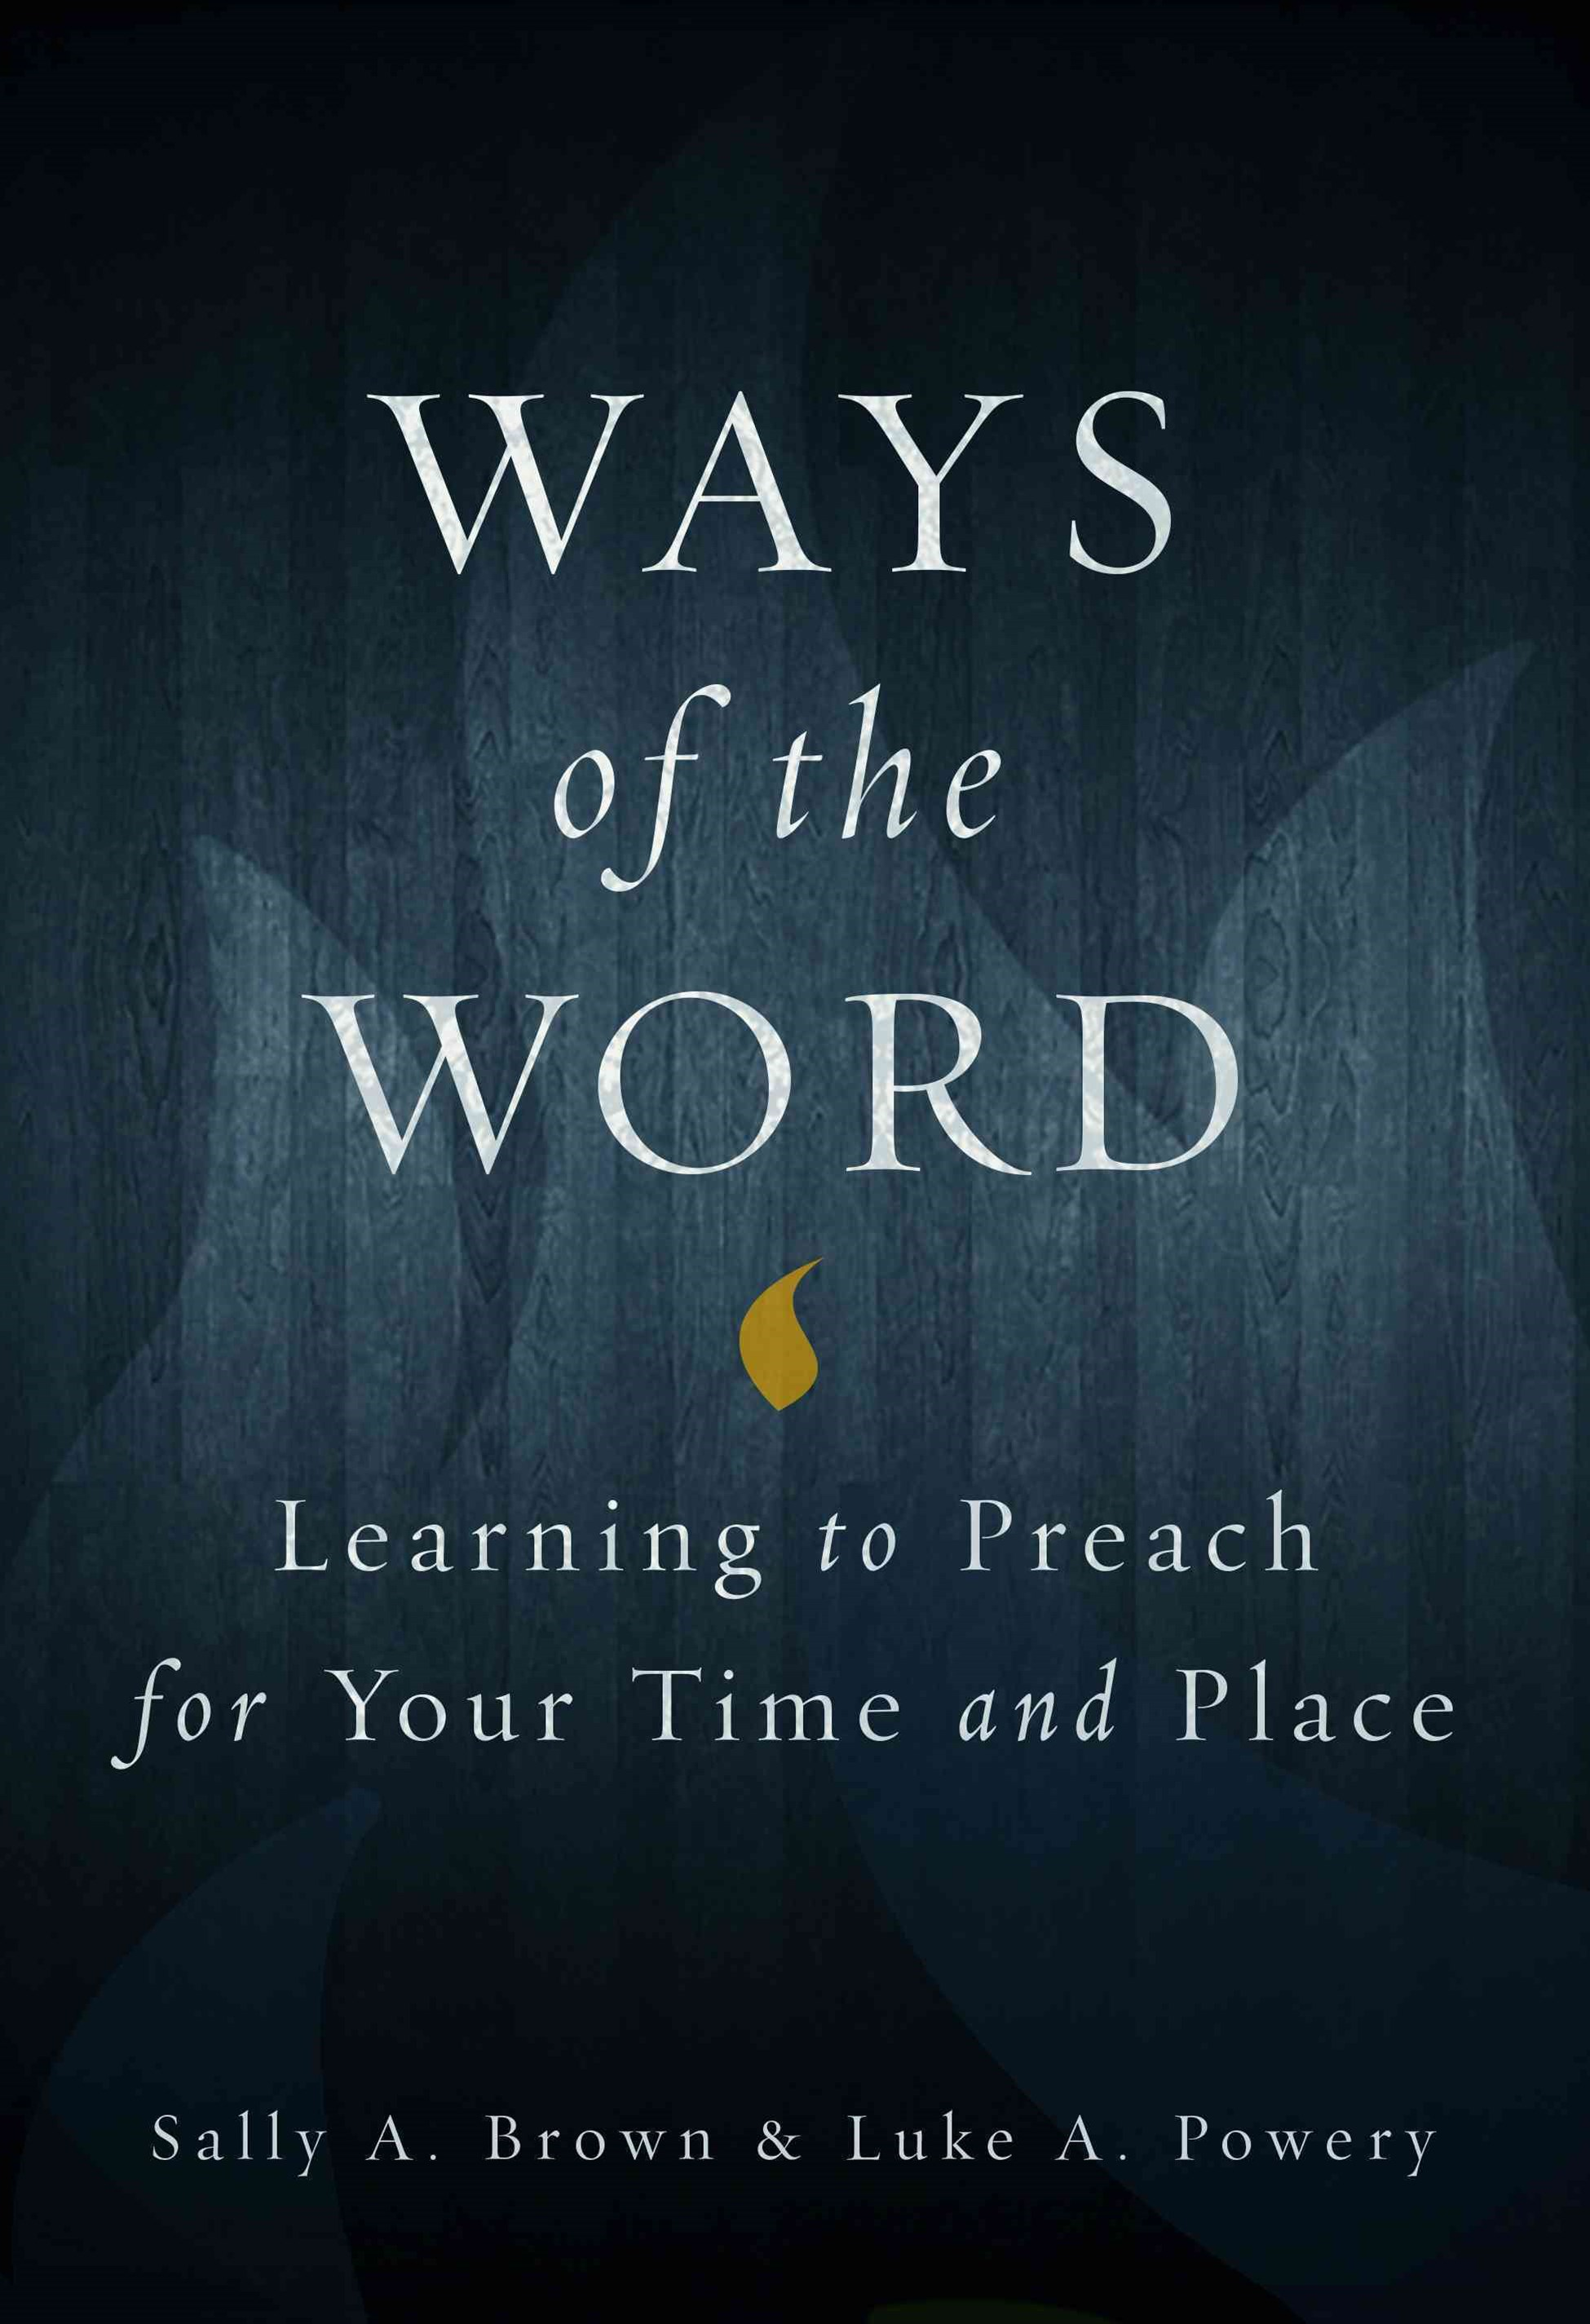 Ways of the Word